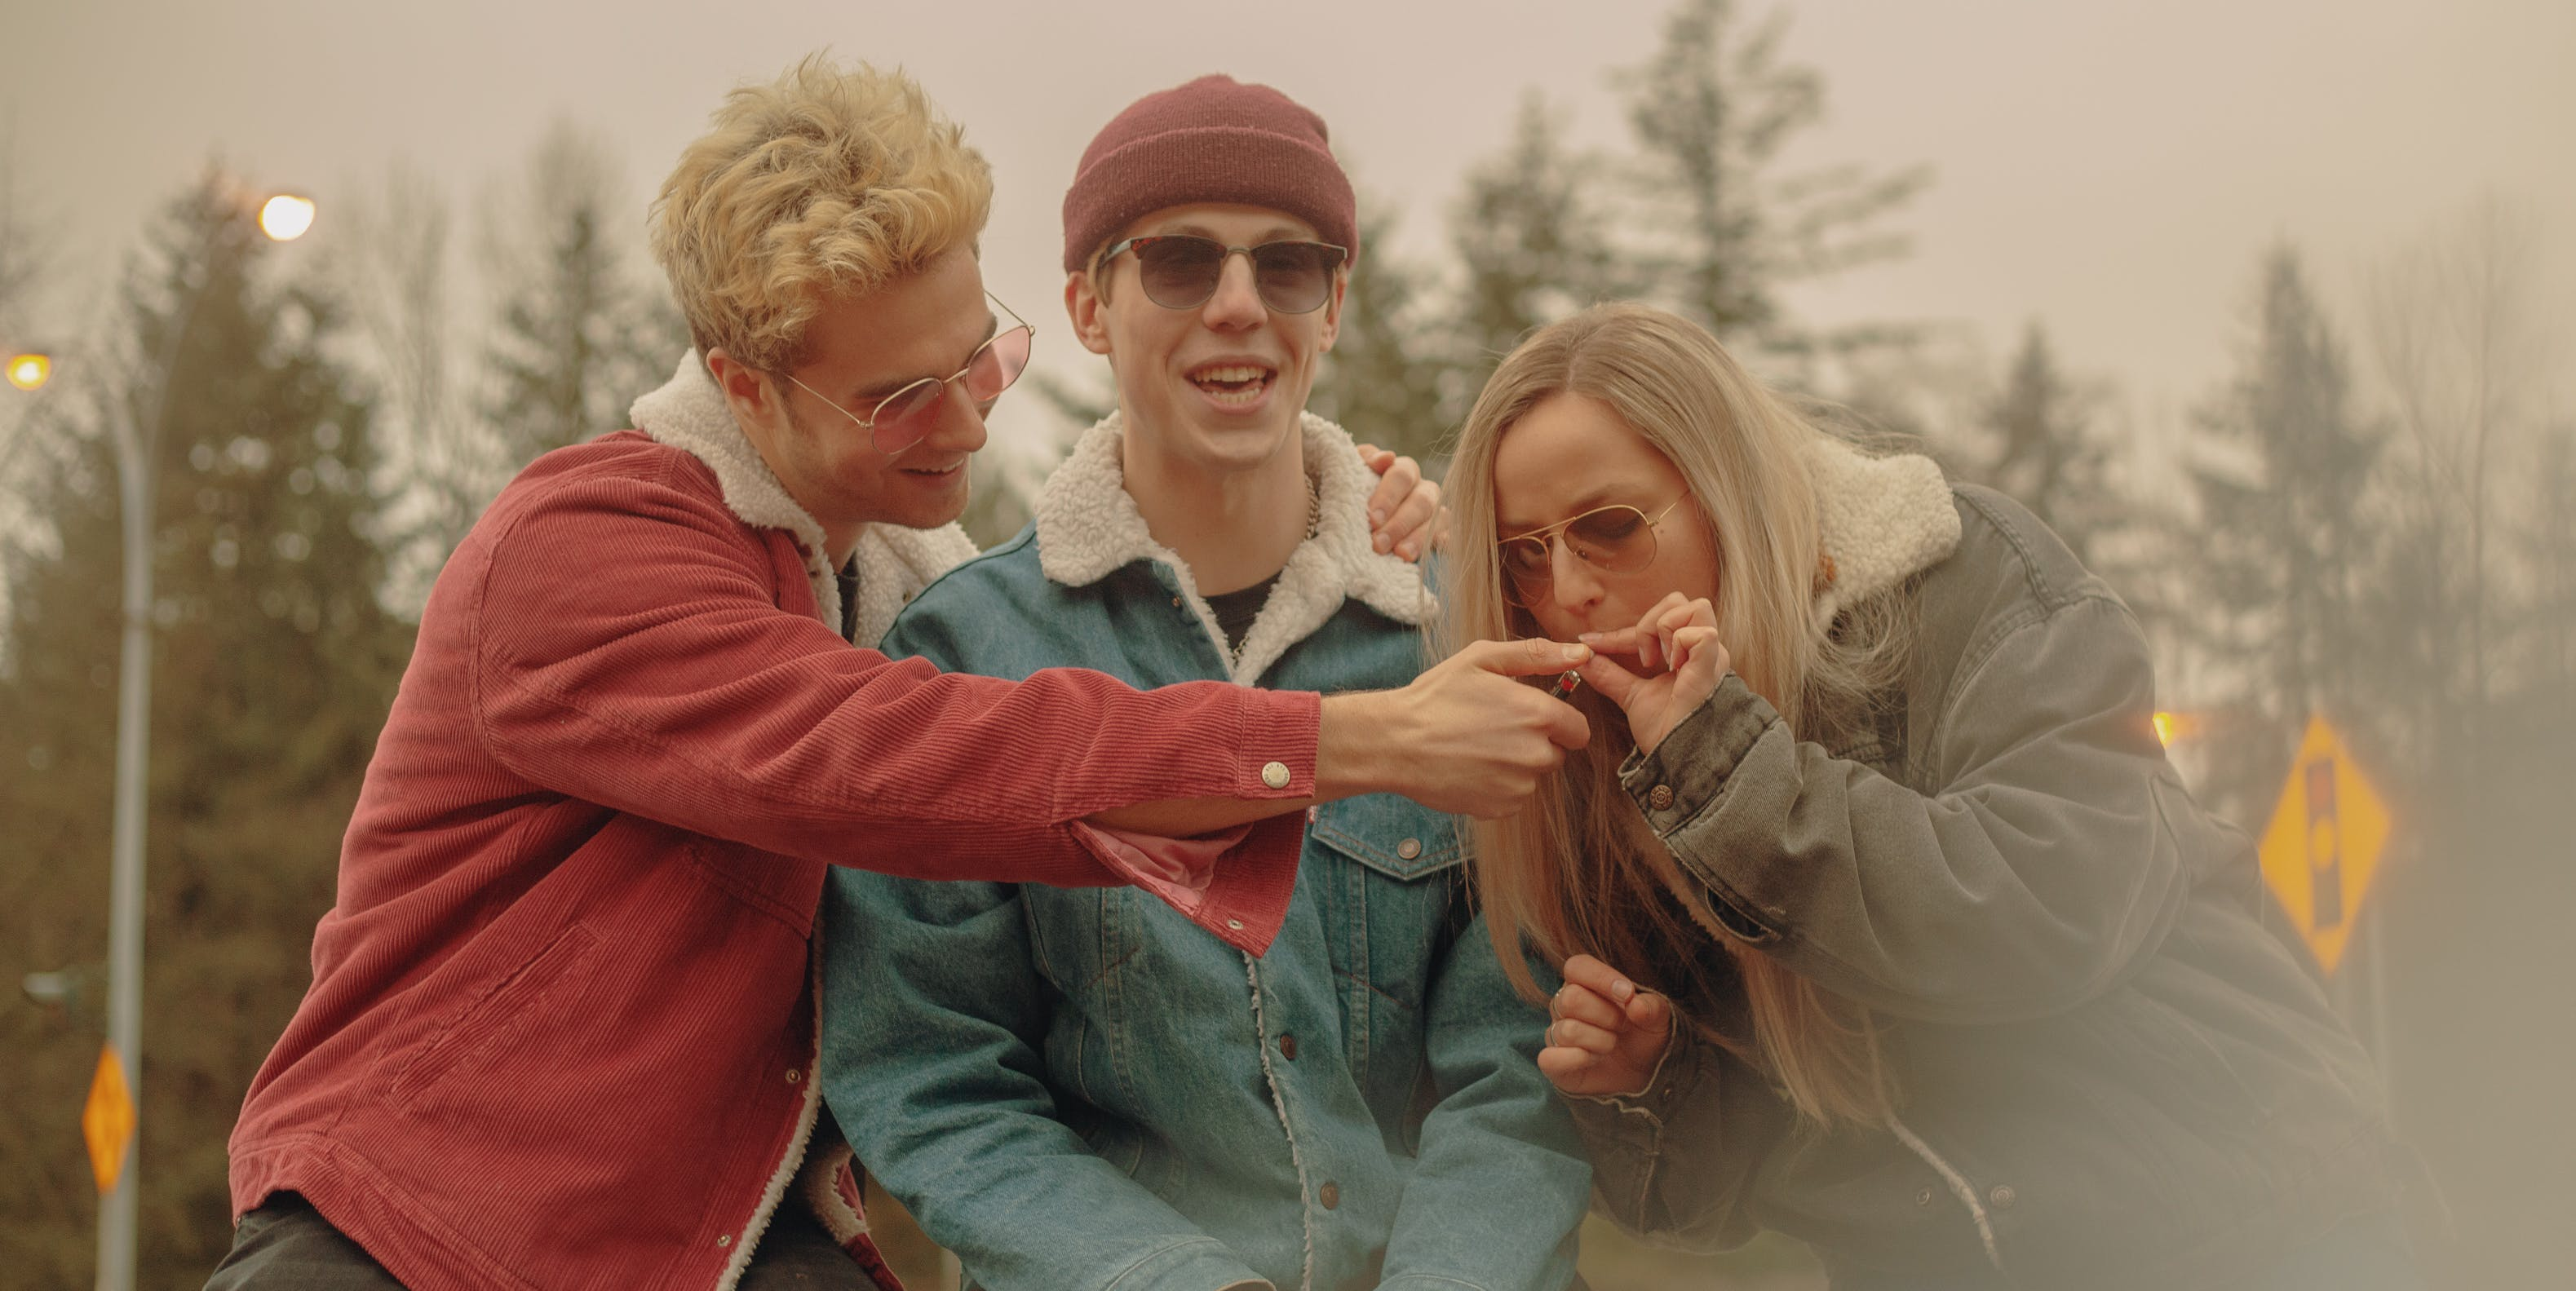 What is Kush? Three people share a joint in front of some trees